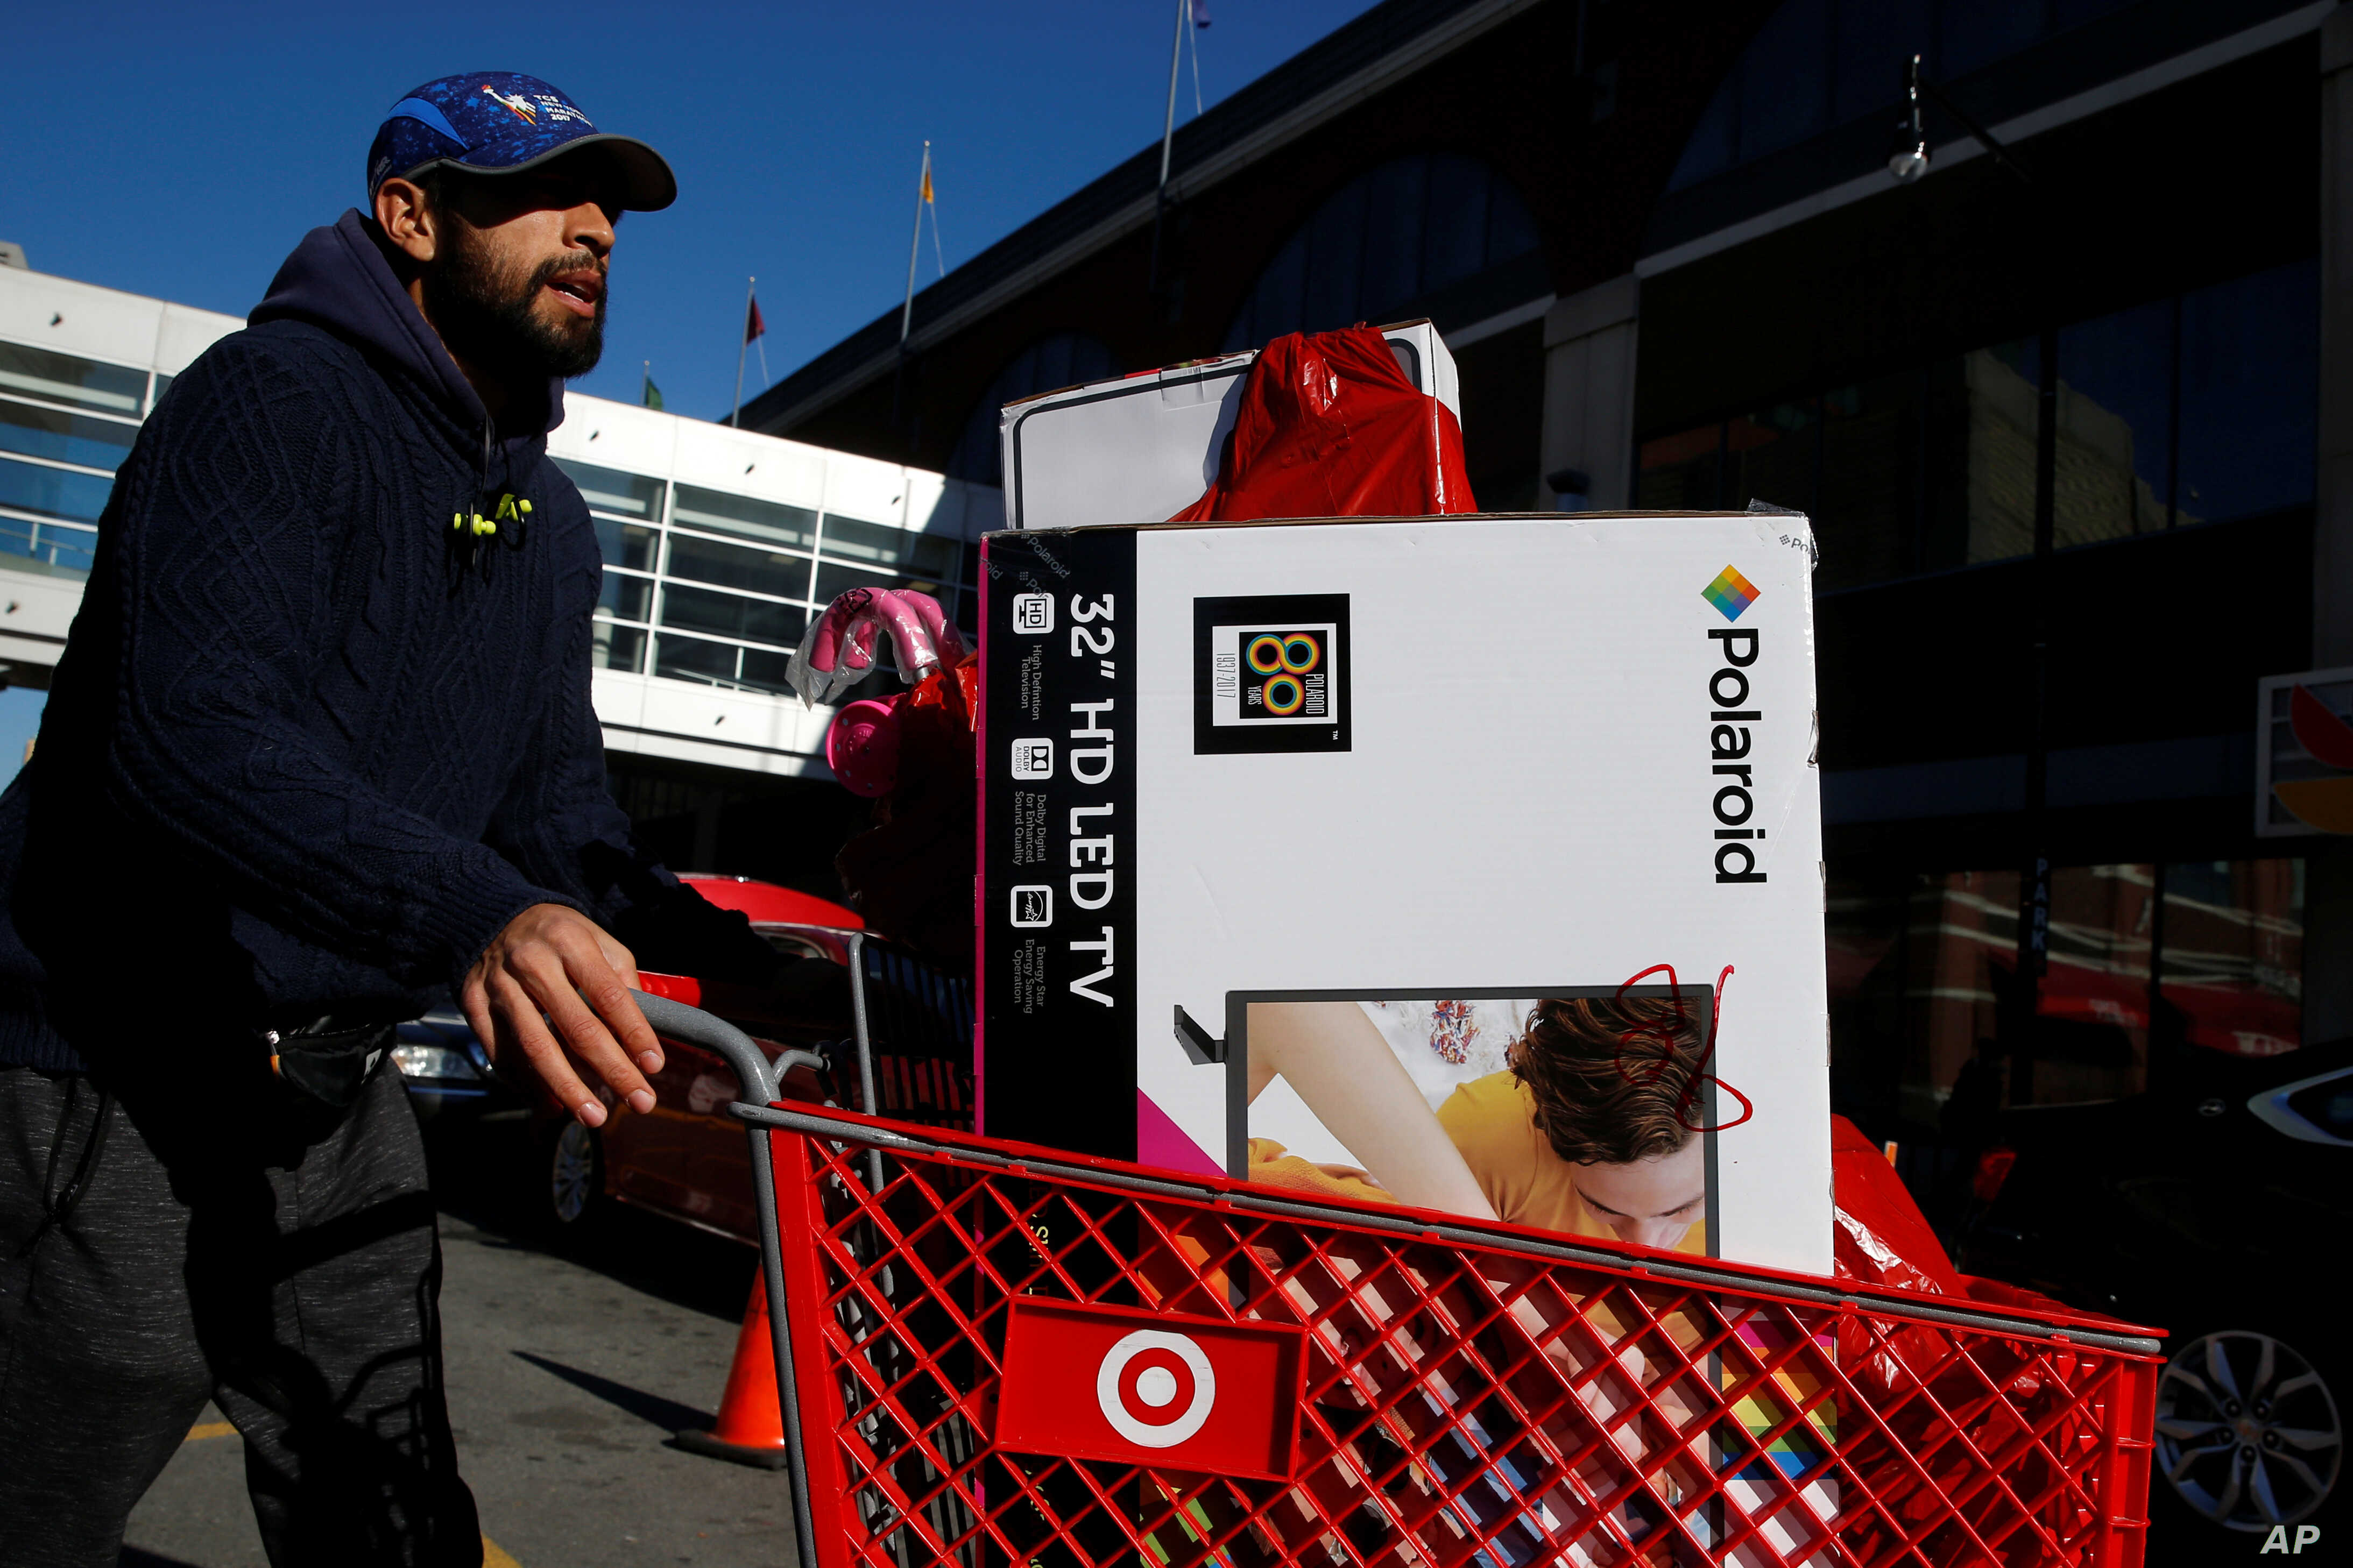 A man pushes a cart full of goods after shopping at a Target store during Black Friday in Brooklyn, N.Y., Nov. 24, 2017.